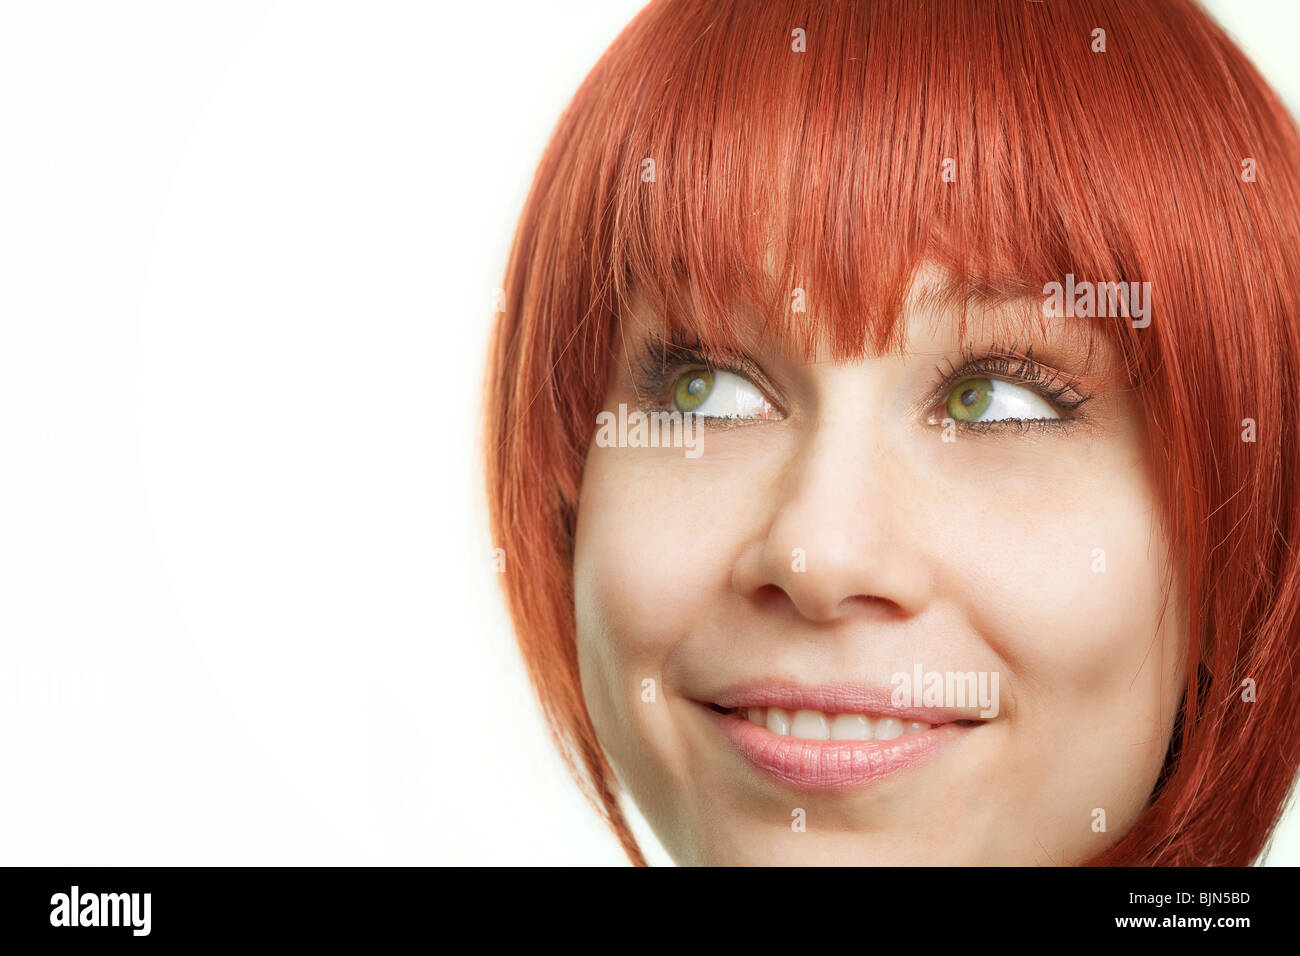 Face of young redhead woman having an idea - Stock Image